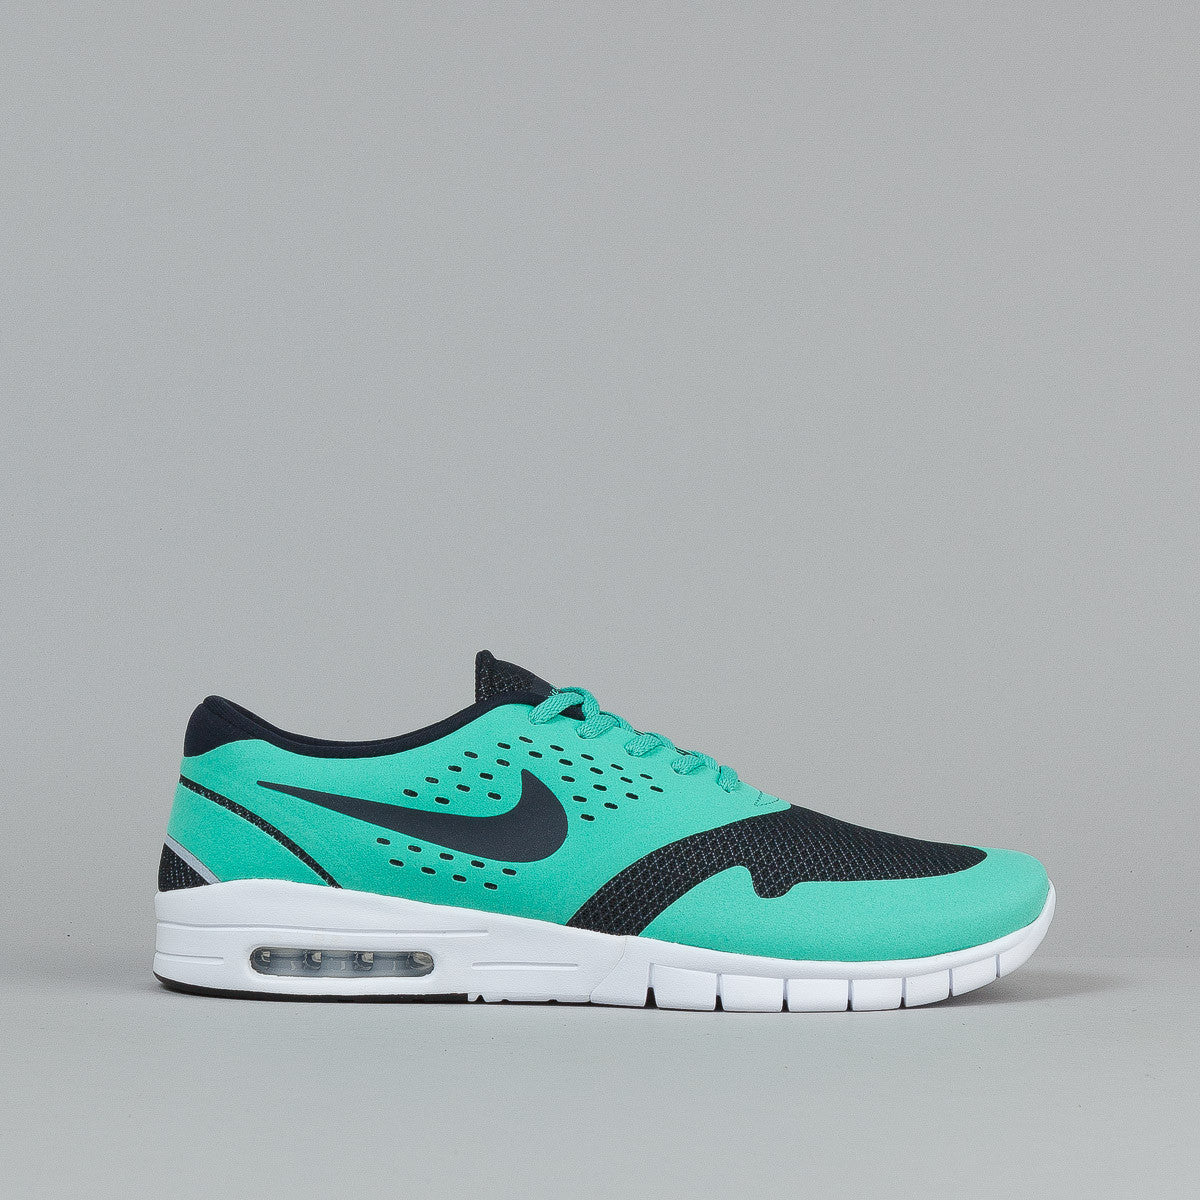 Nike SB Eric Koston 2 Max Crystal Mint / Dark Obsidian